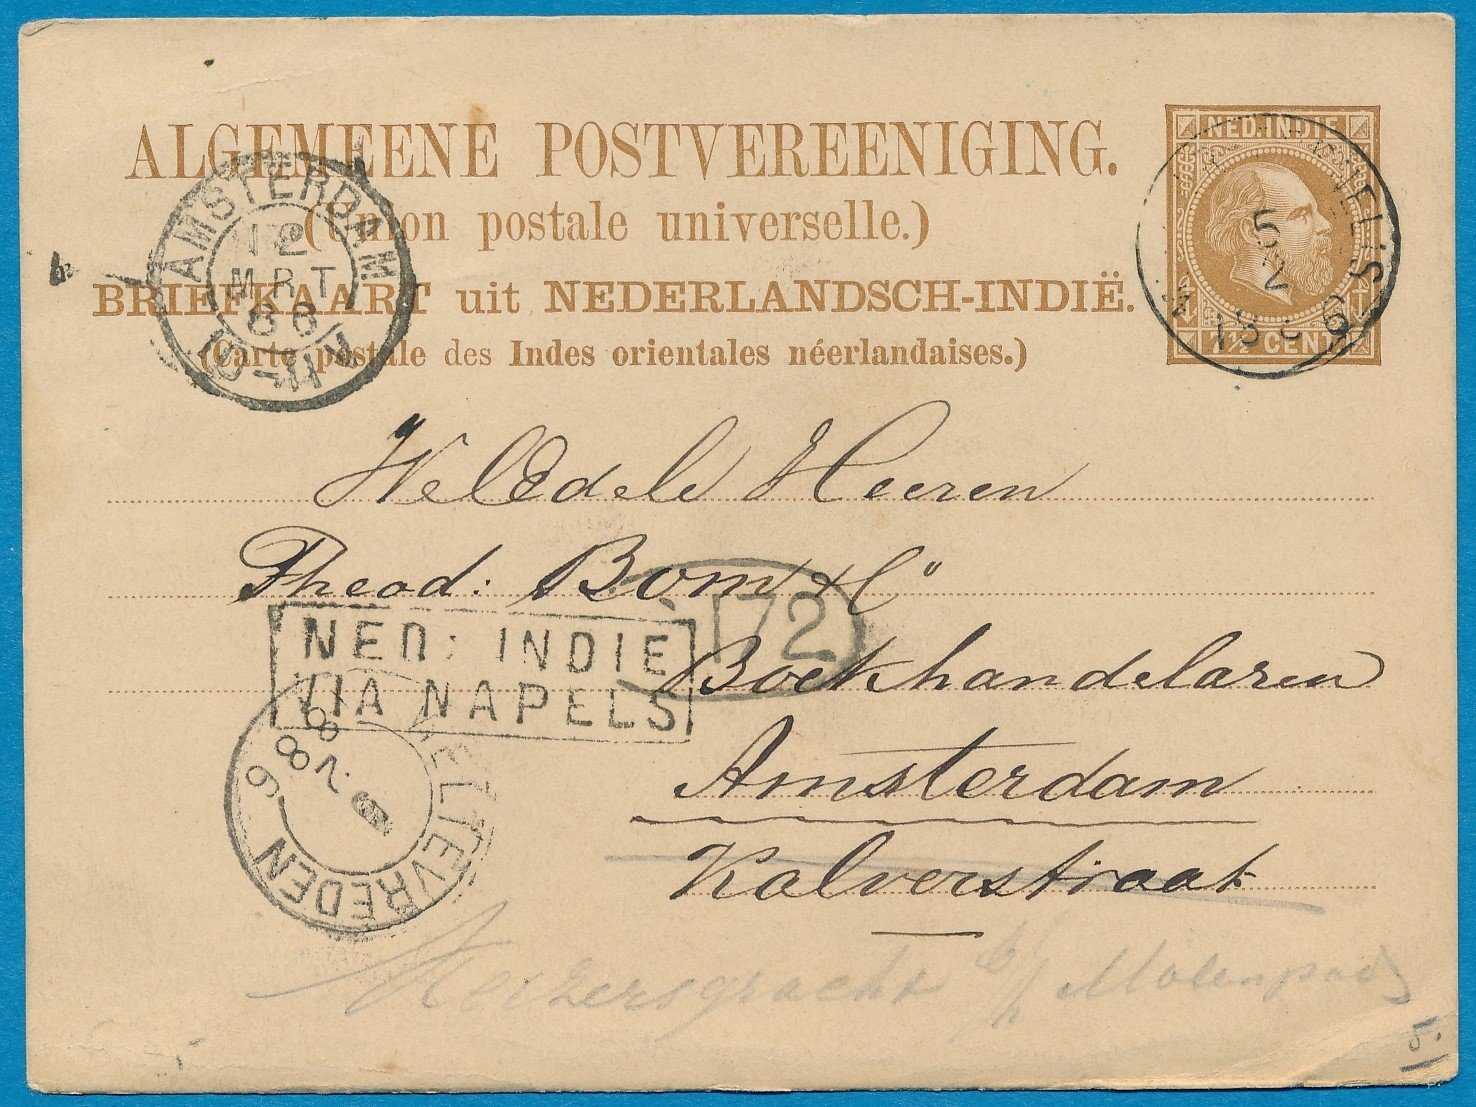 NETHERLANDS EAST INDIES postal card 1886 Meester Cornelis